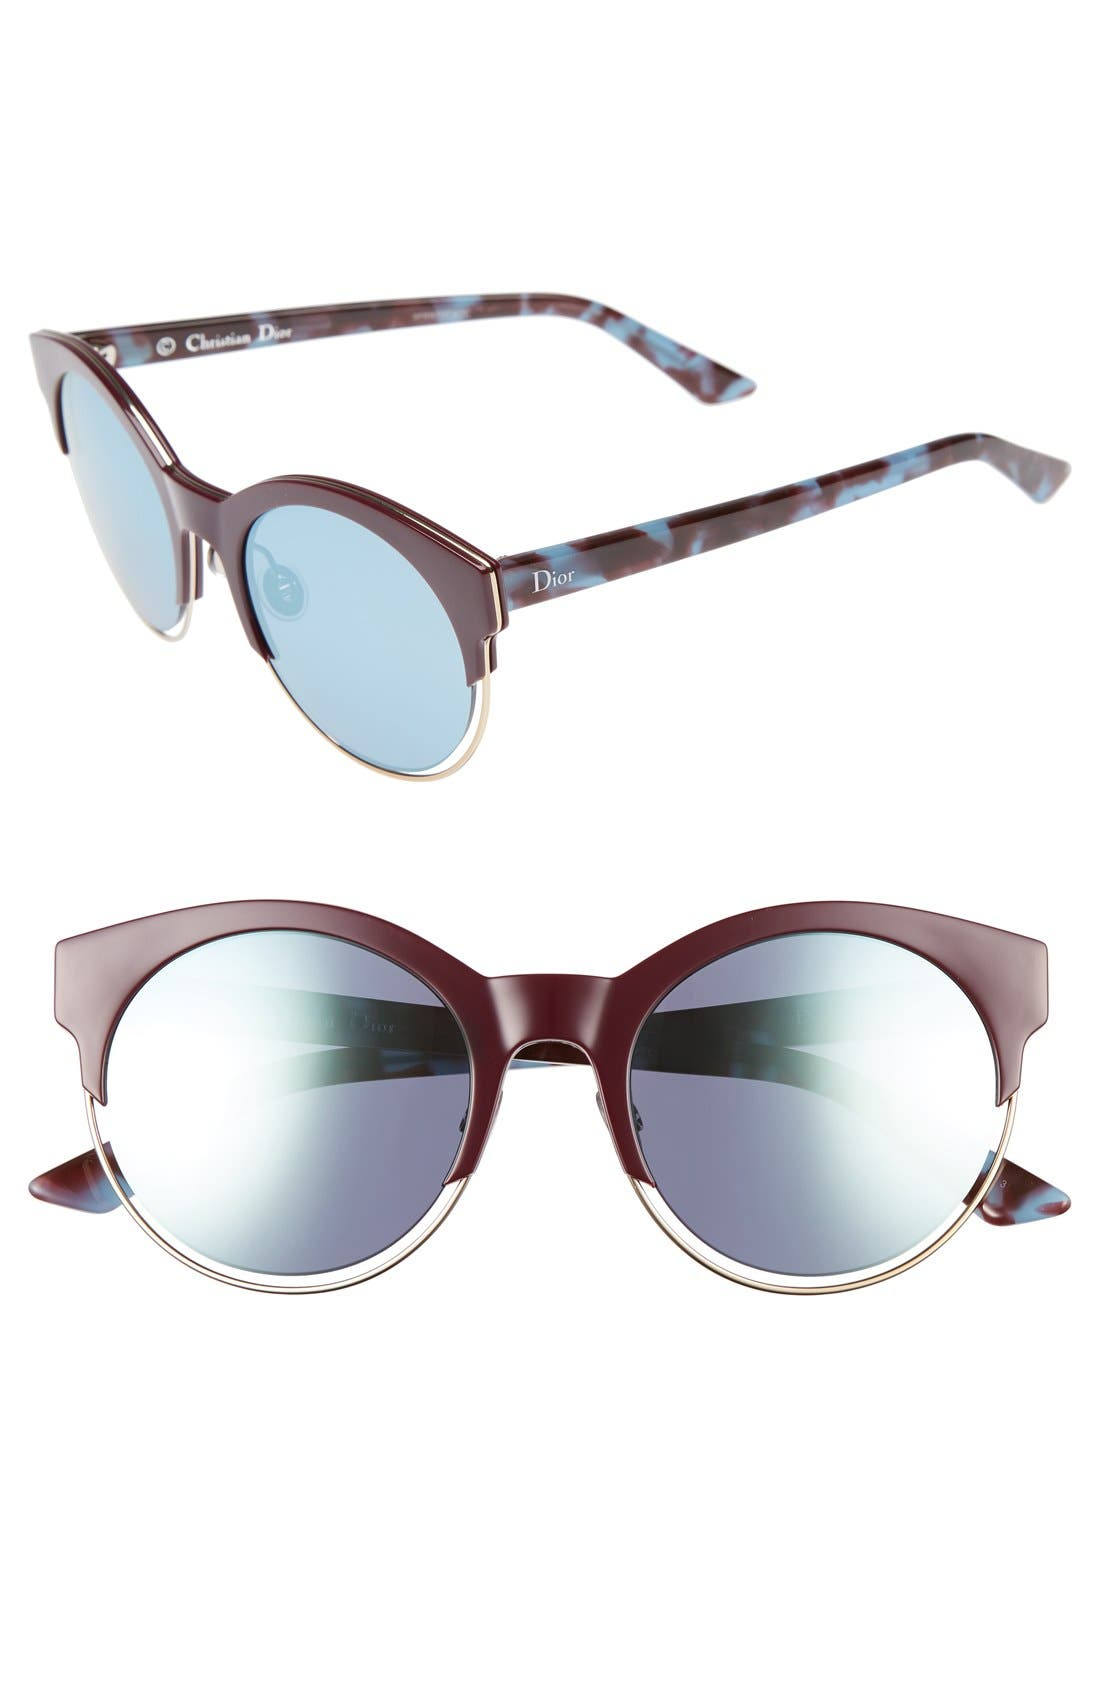 Siderall 1 53mm Round Sunglasses,                             Main thumbnail 7, color,